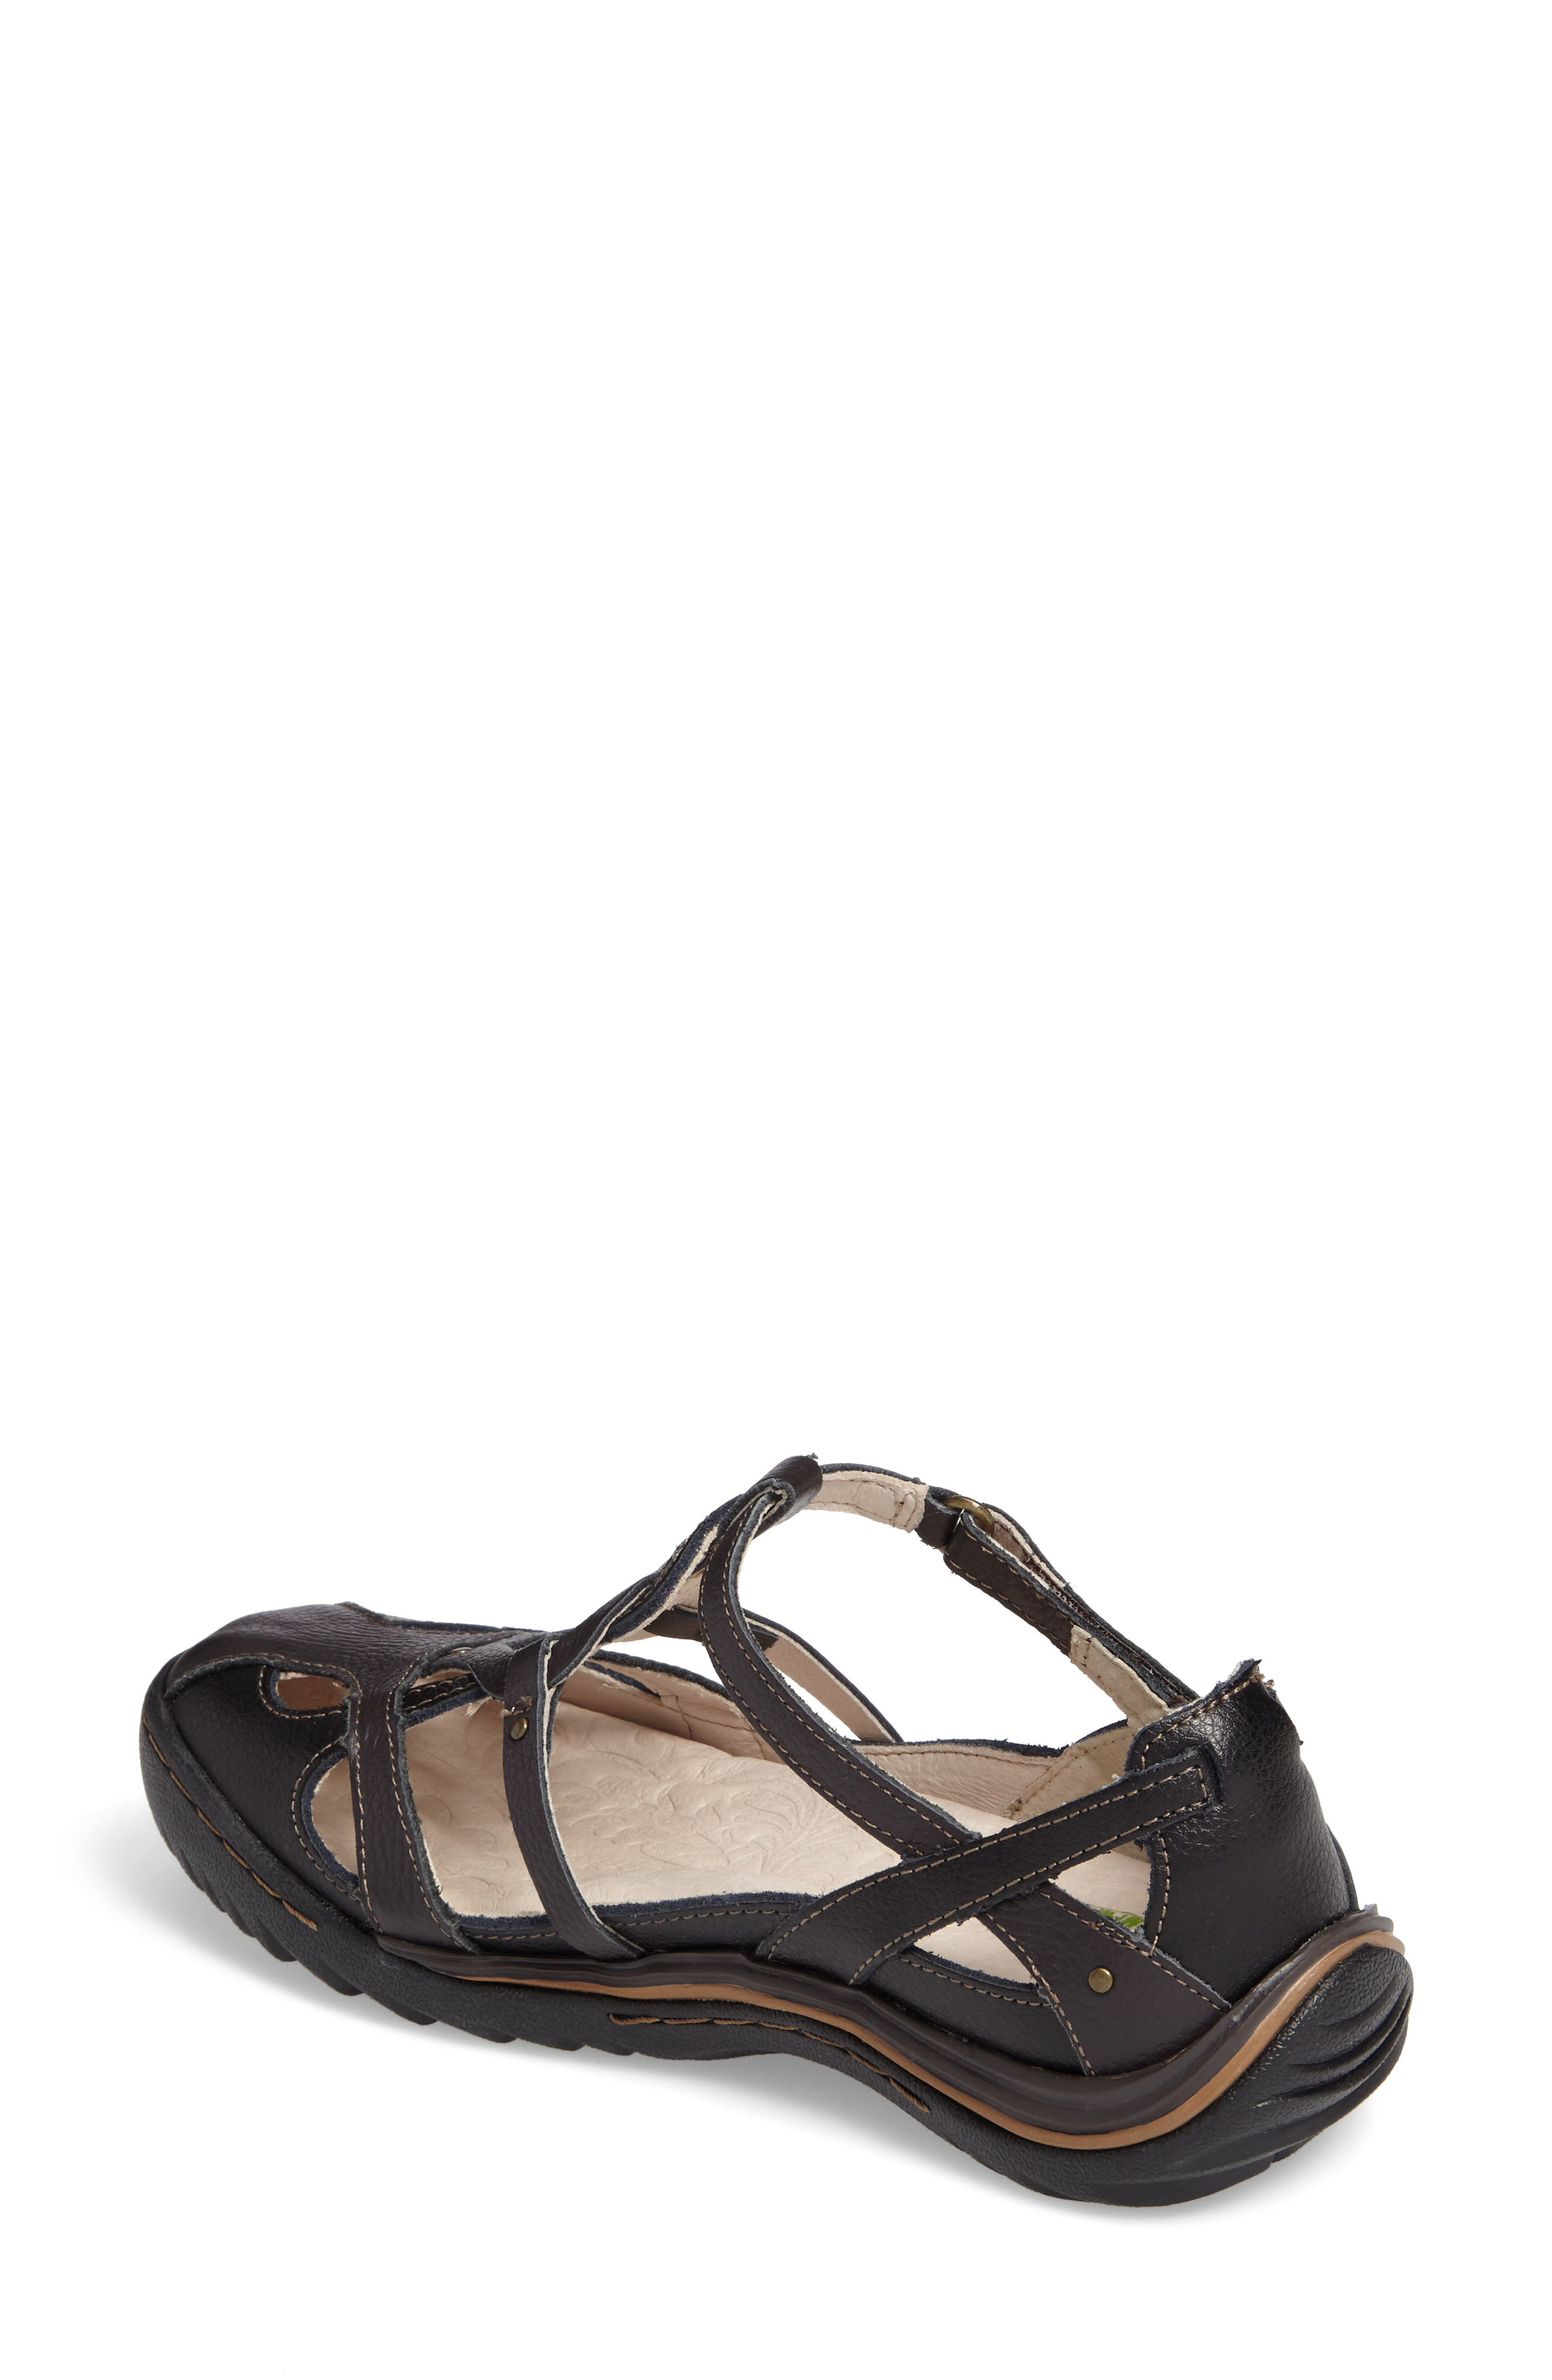 Spain Studded Strappy Sneaker,                             Alternate thumbnail 2, color,                             BLACK LEATHER